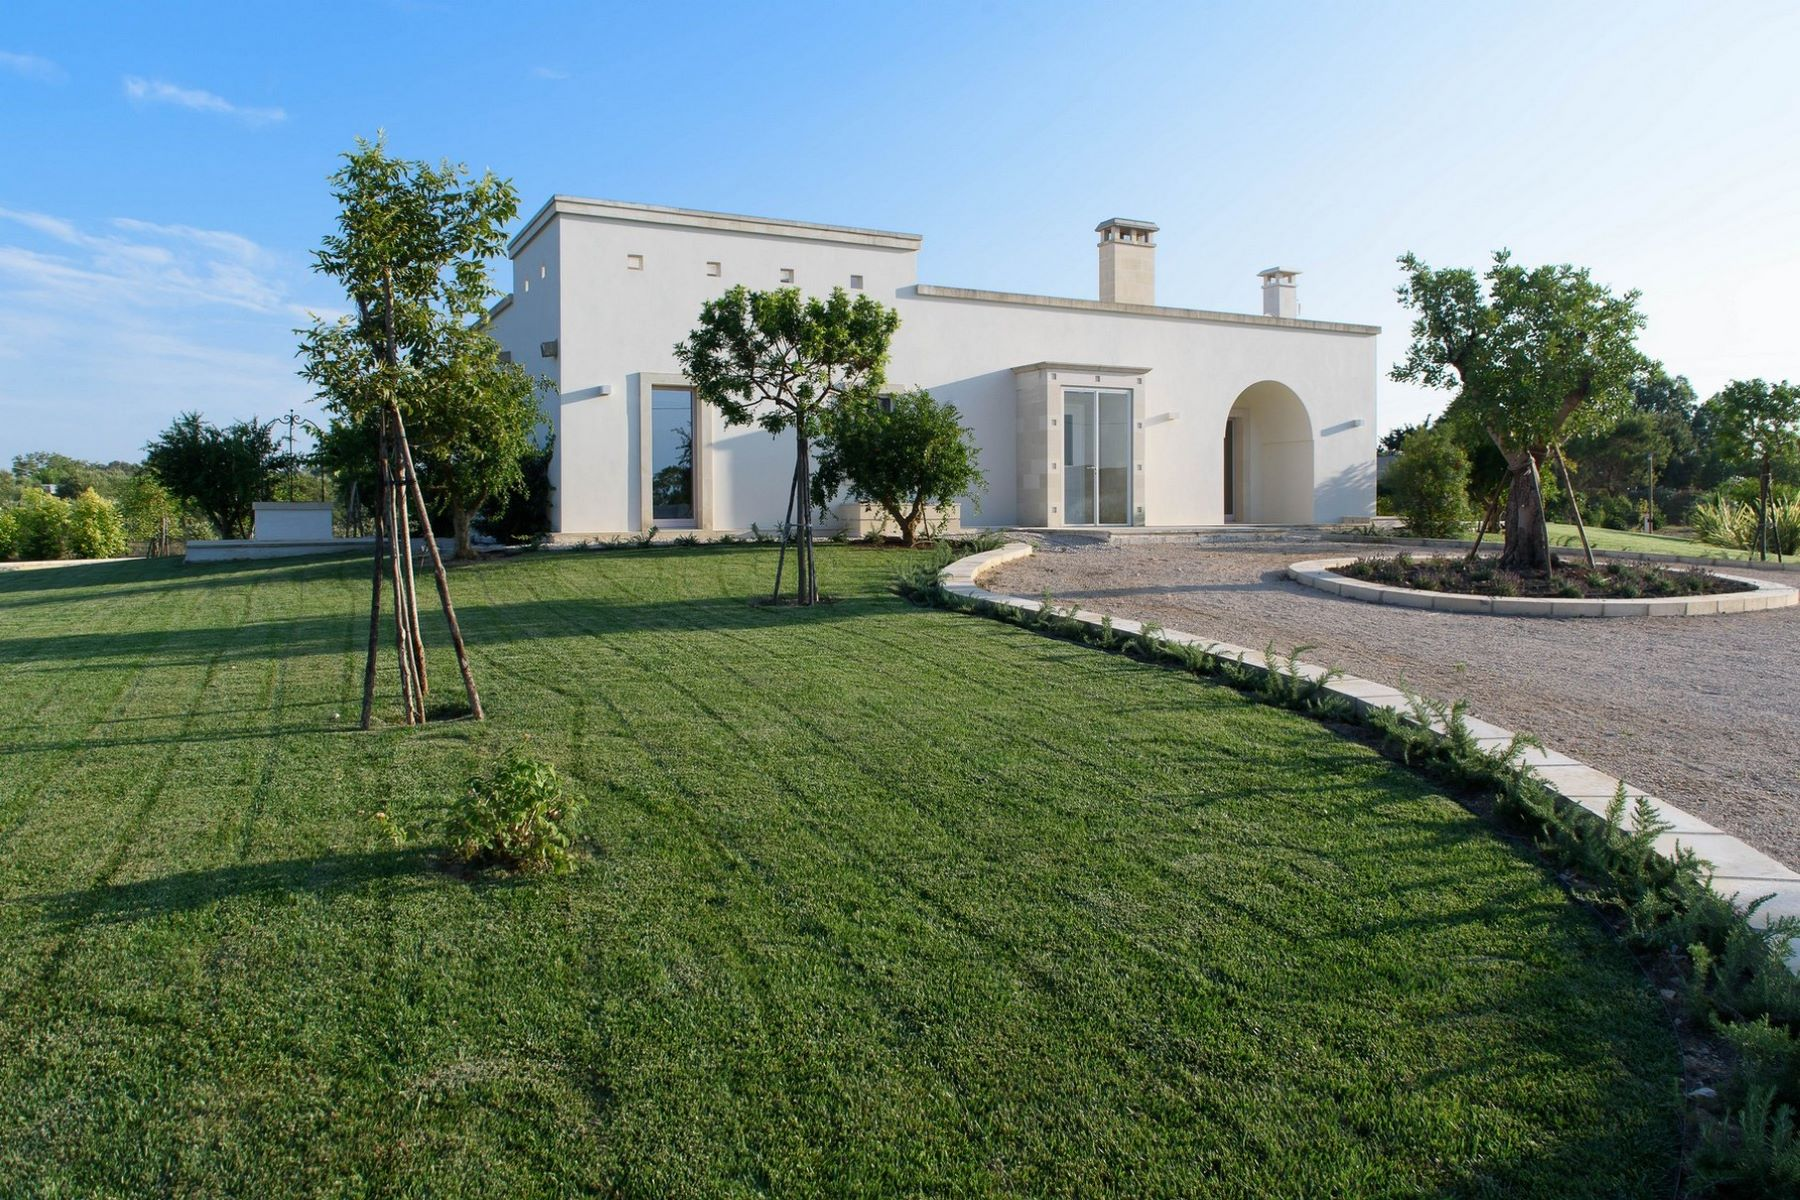 Single Family Home for Sale at Stone design villa in Salento Contrada Contatore Other Lecce, Lecce 73020 Italy